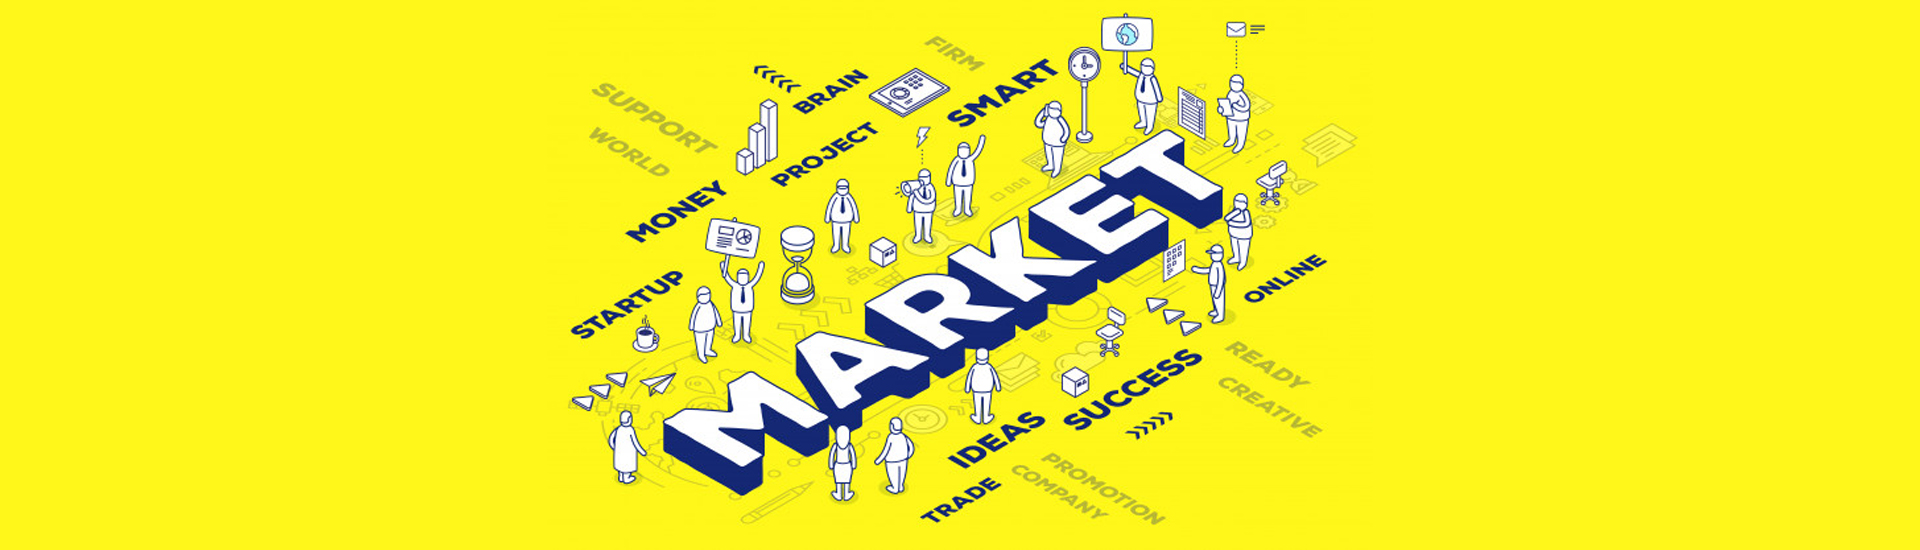 How Digital Marketing changed the game for Startups and SMEs?